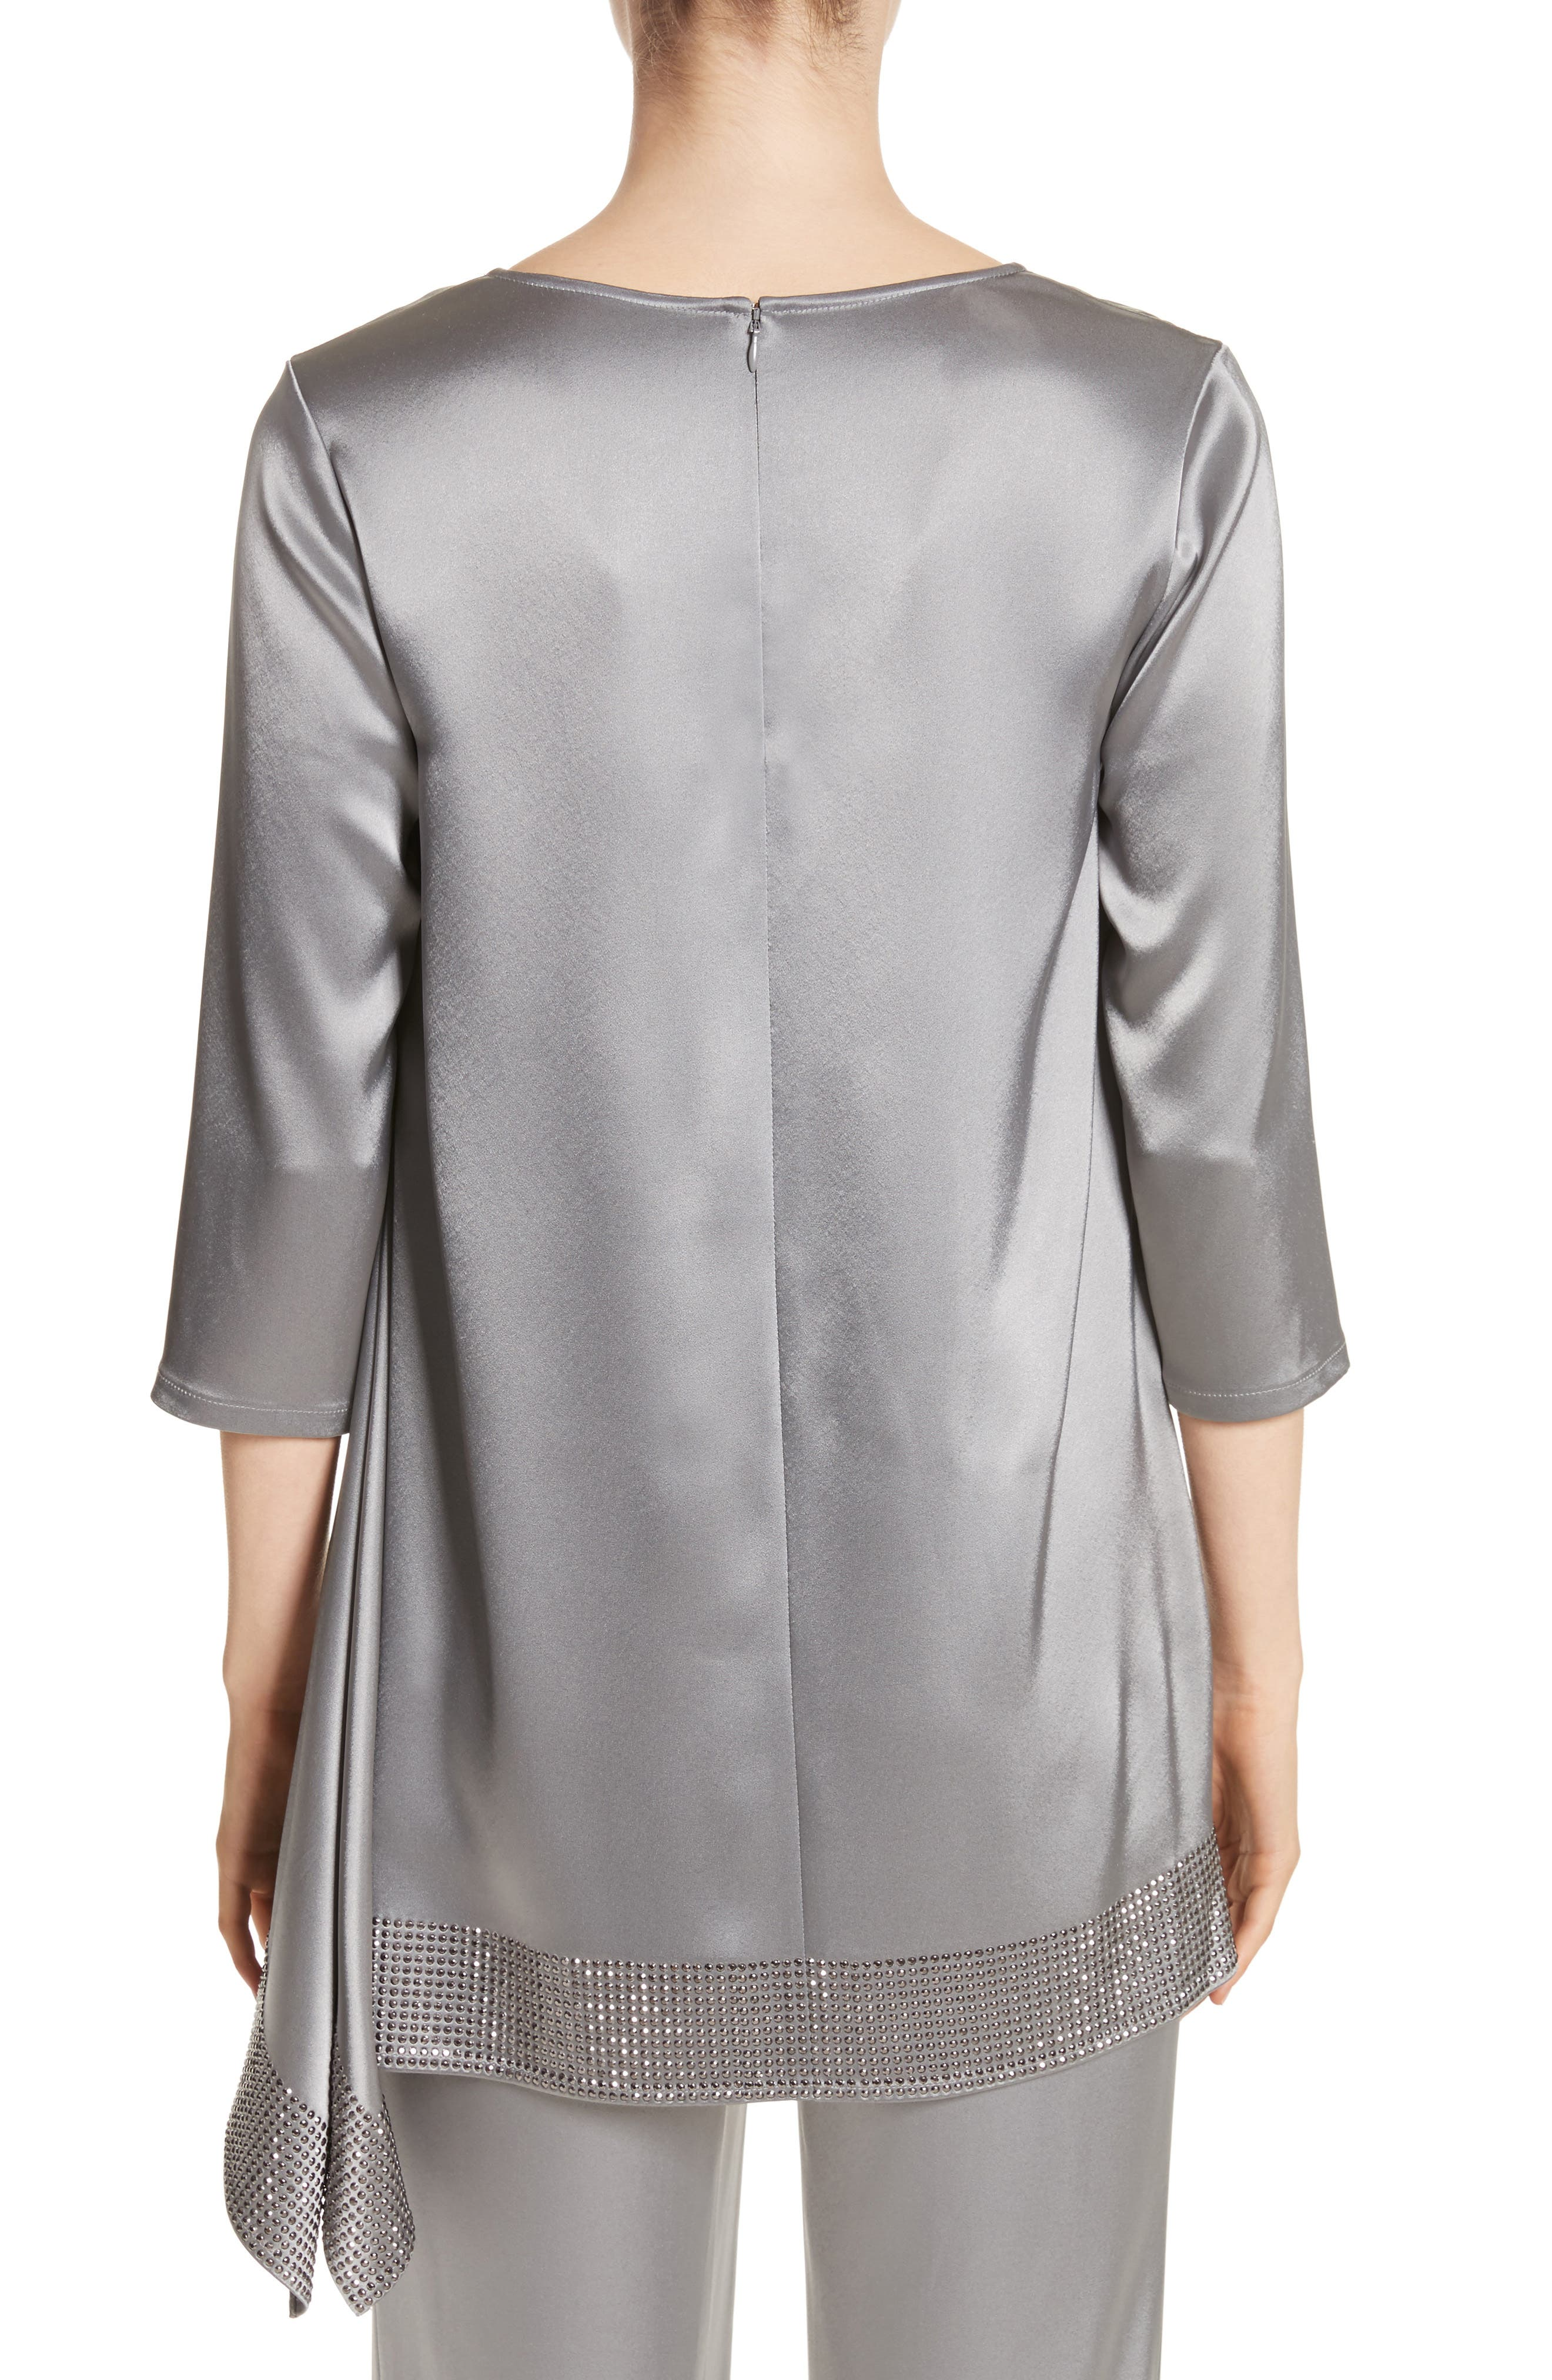 Alternate Image 2  - St. John Collection Liquid Satin Asymmetrical Top